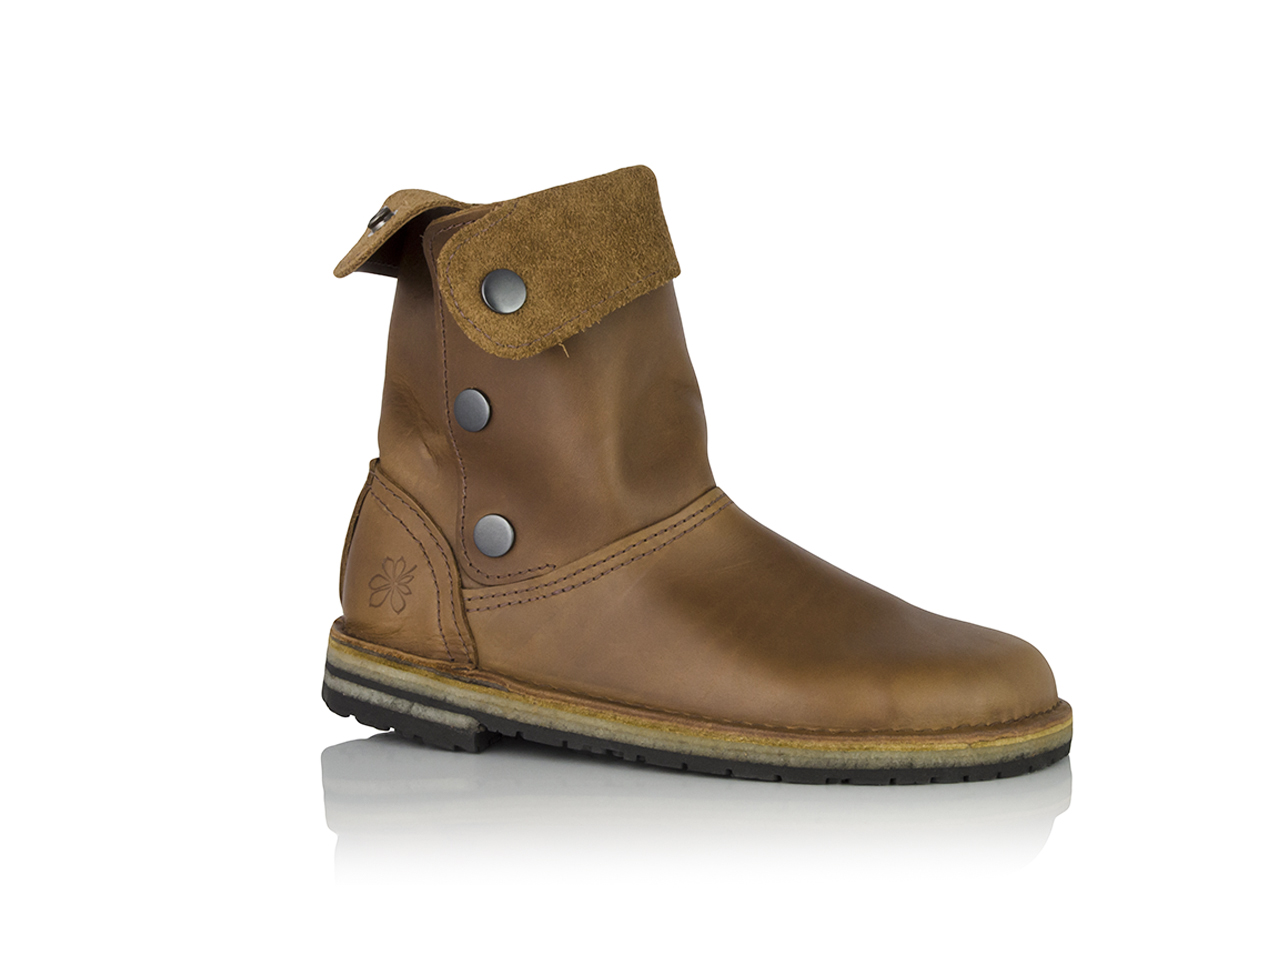 Conker Shoes English Handmade Leather Shoes Since 1977